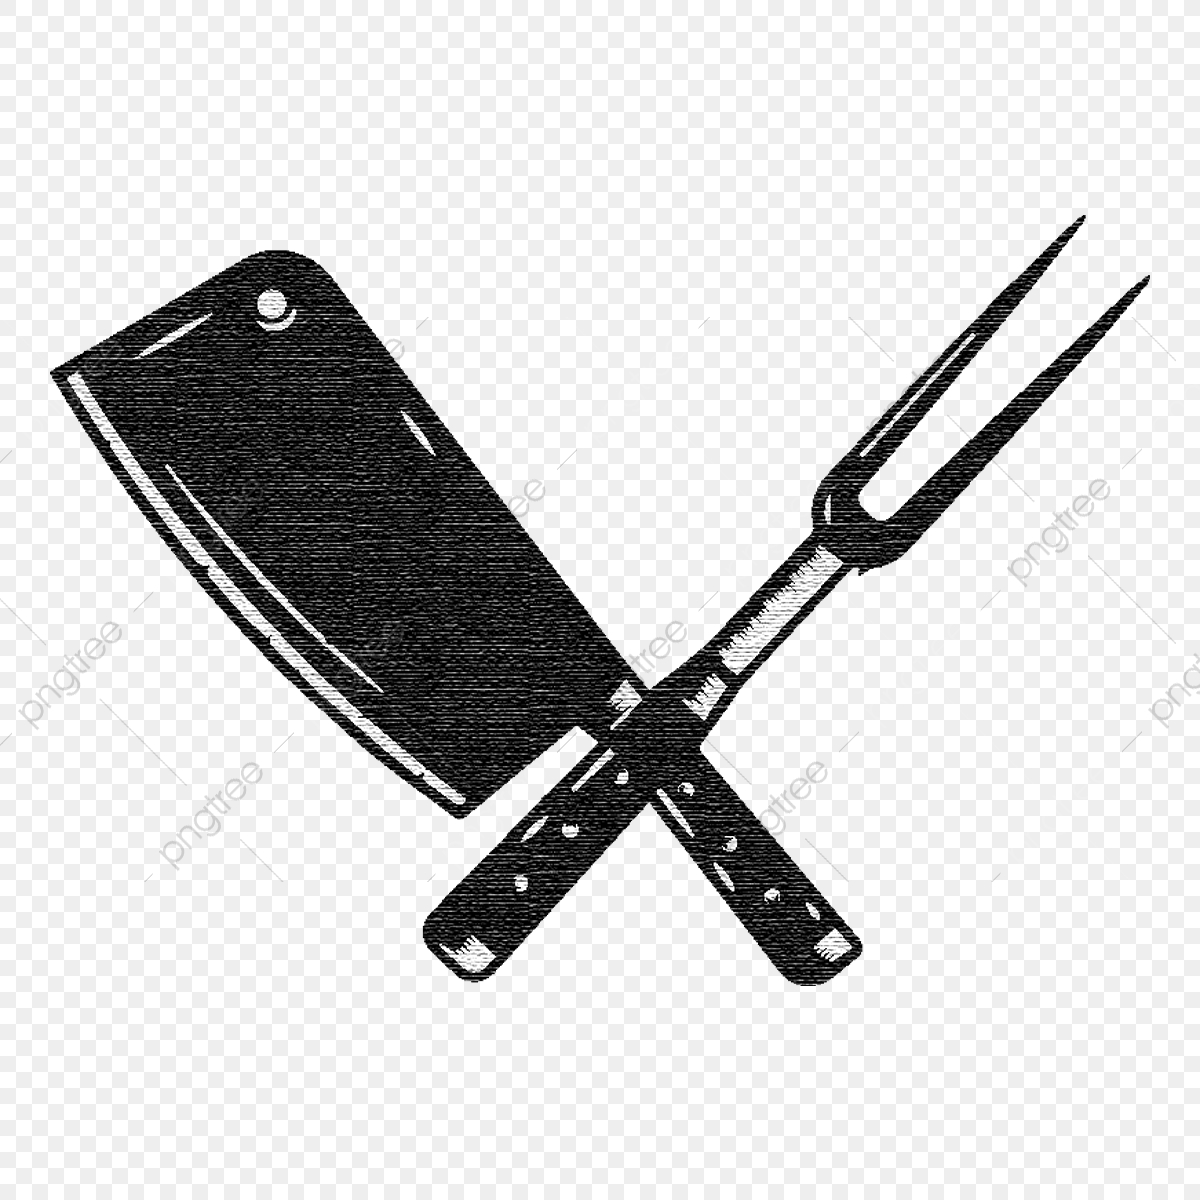 Kitchen Knives Knives Kitchen Png And Vector With